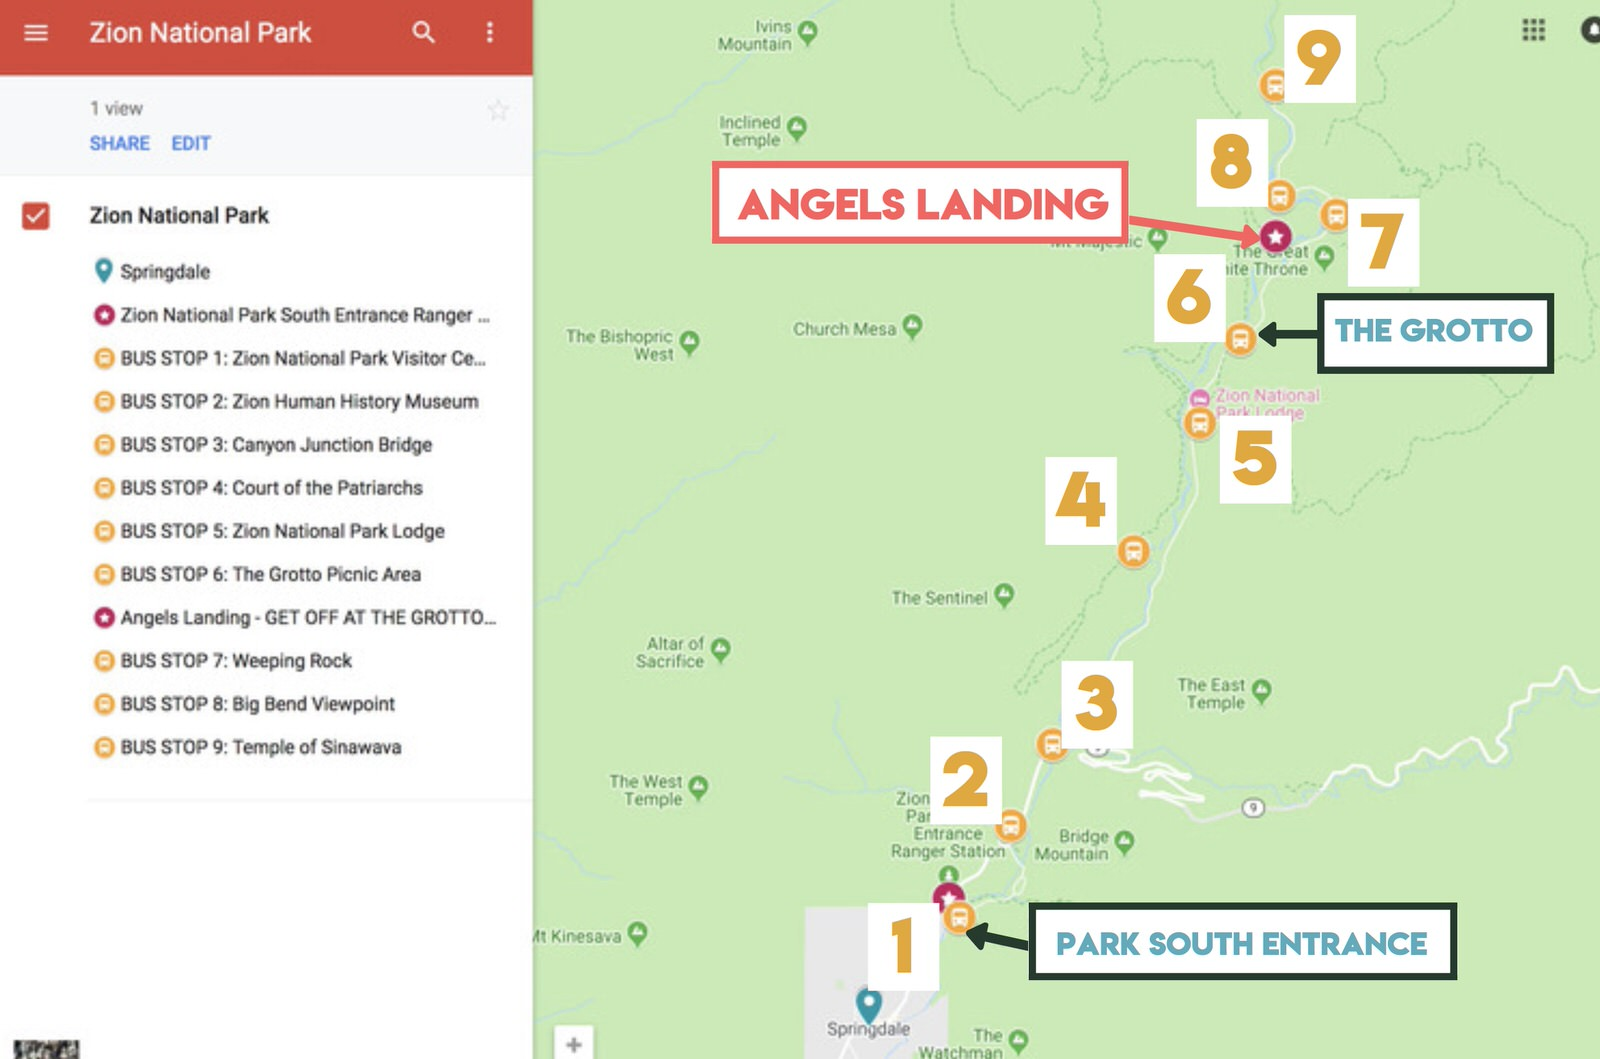 Map of the bus stops in Zion National Park and the location of the Angels Landing Trail.